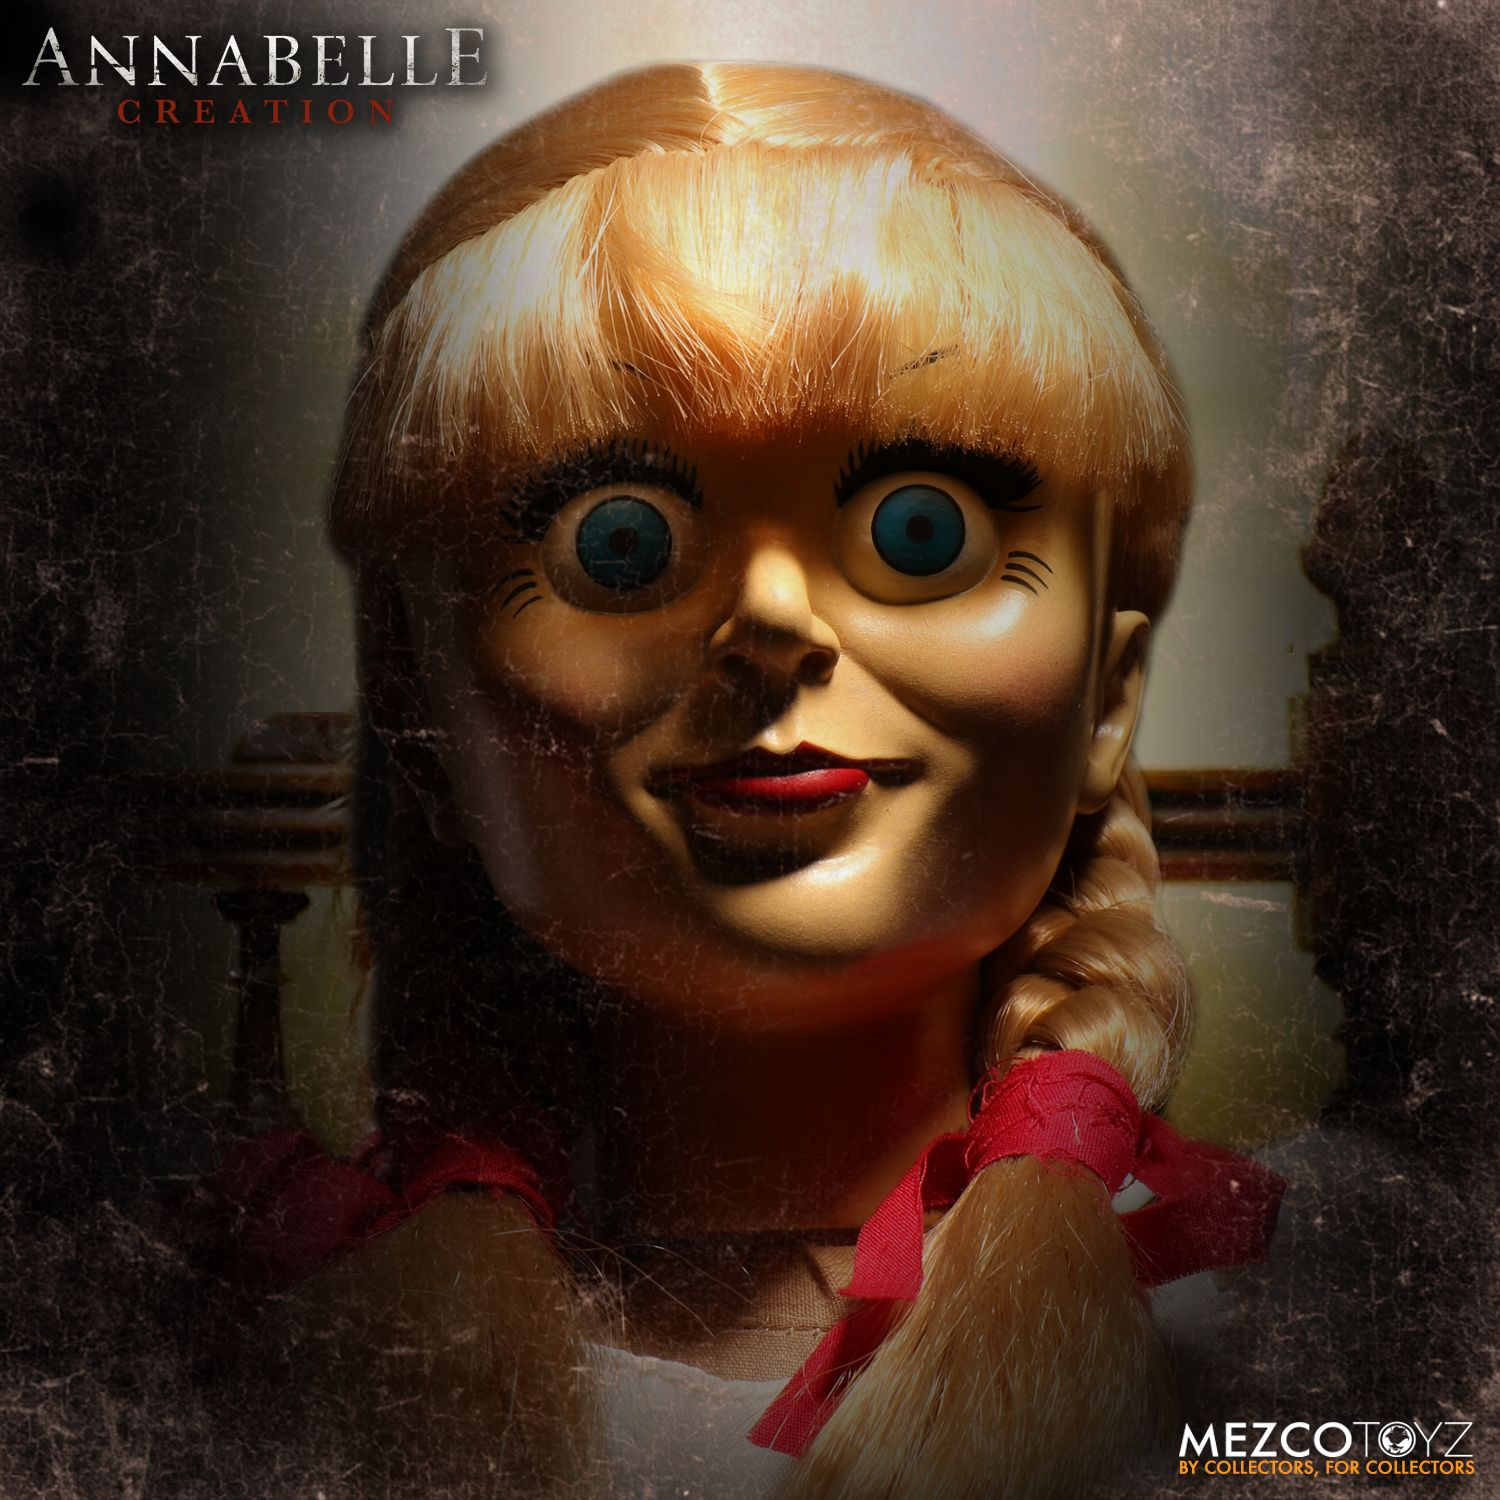 IN STOCK 18 inch Mezco 90503 Annabelle Creation Figure